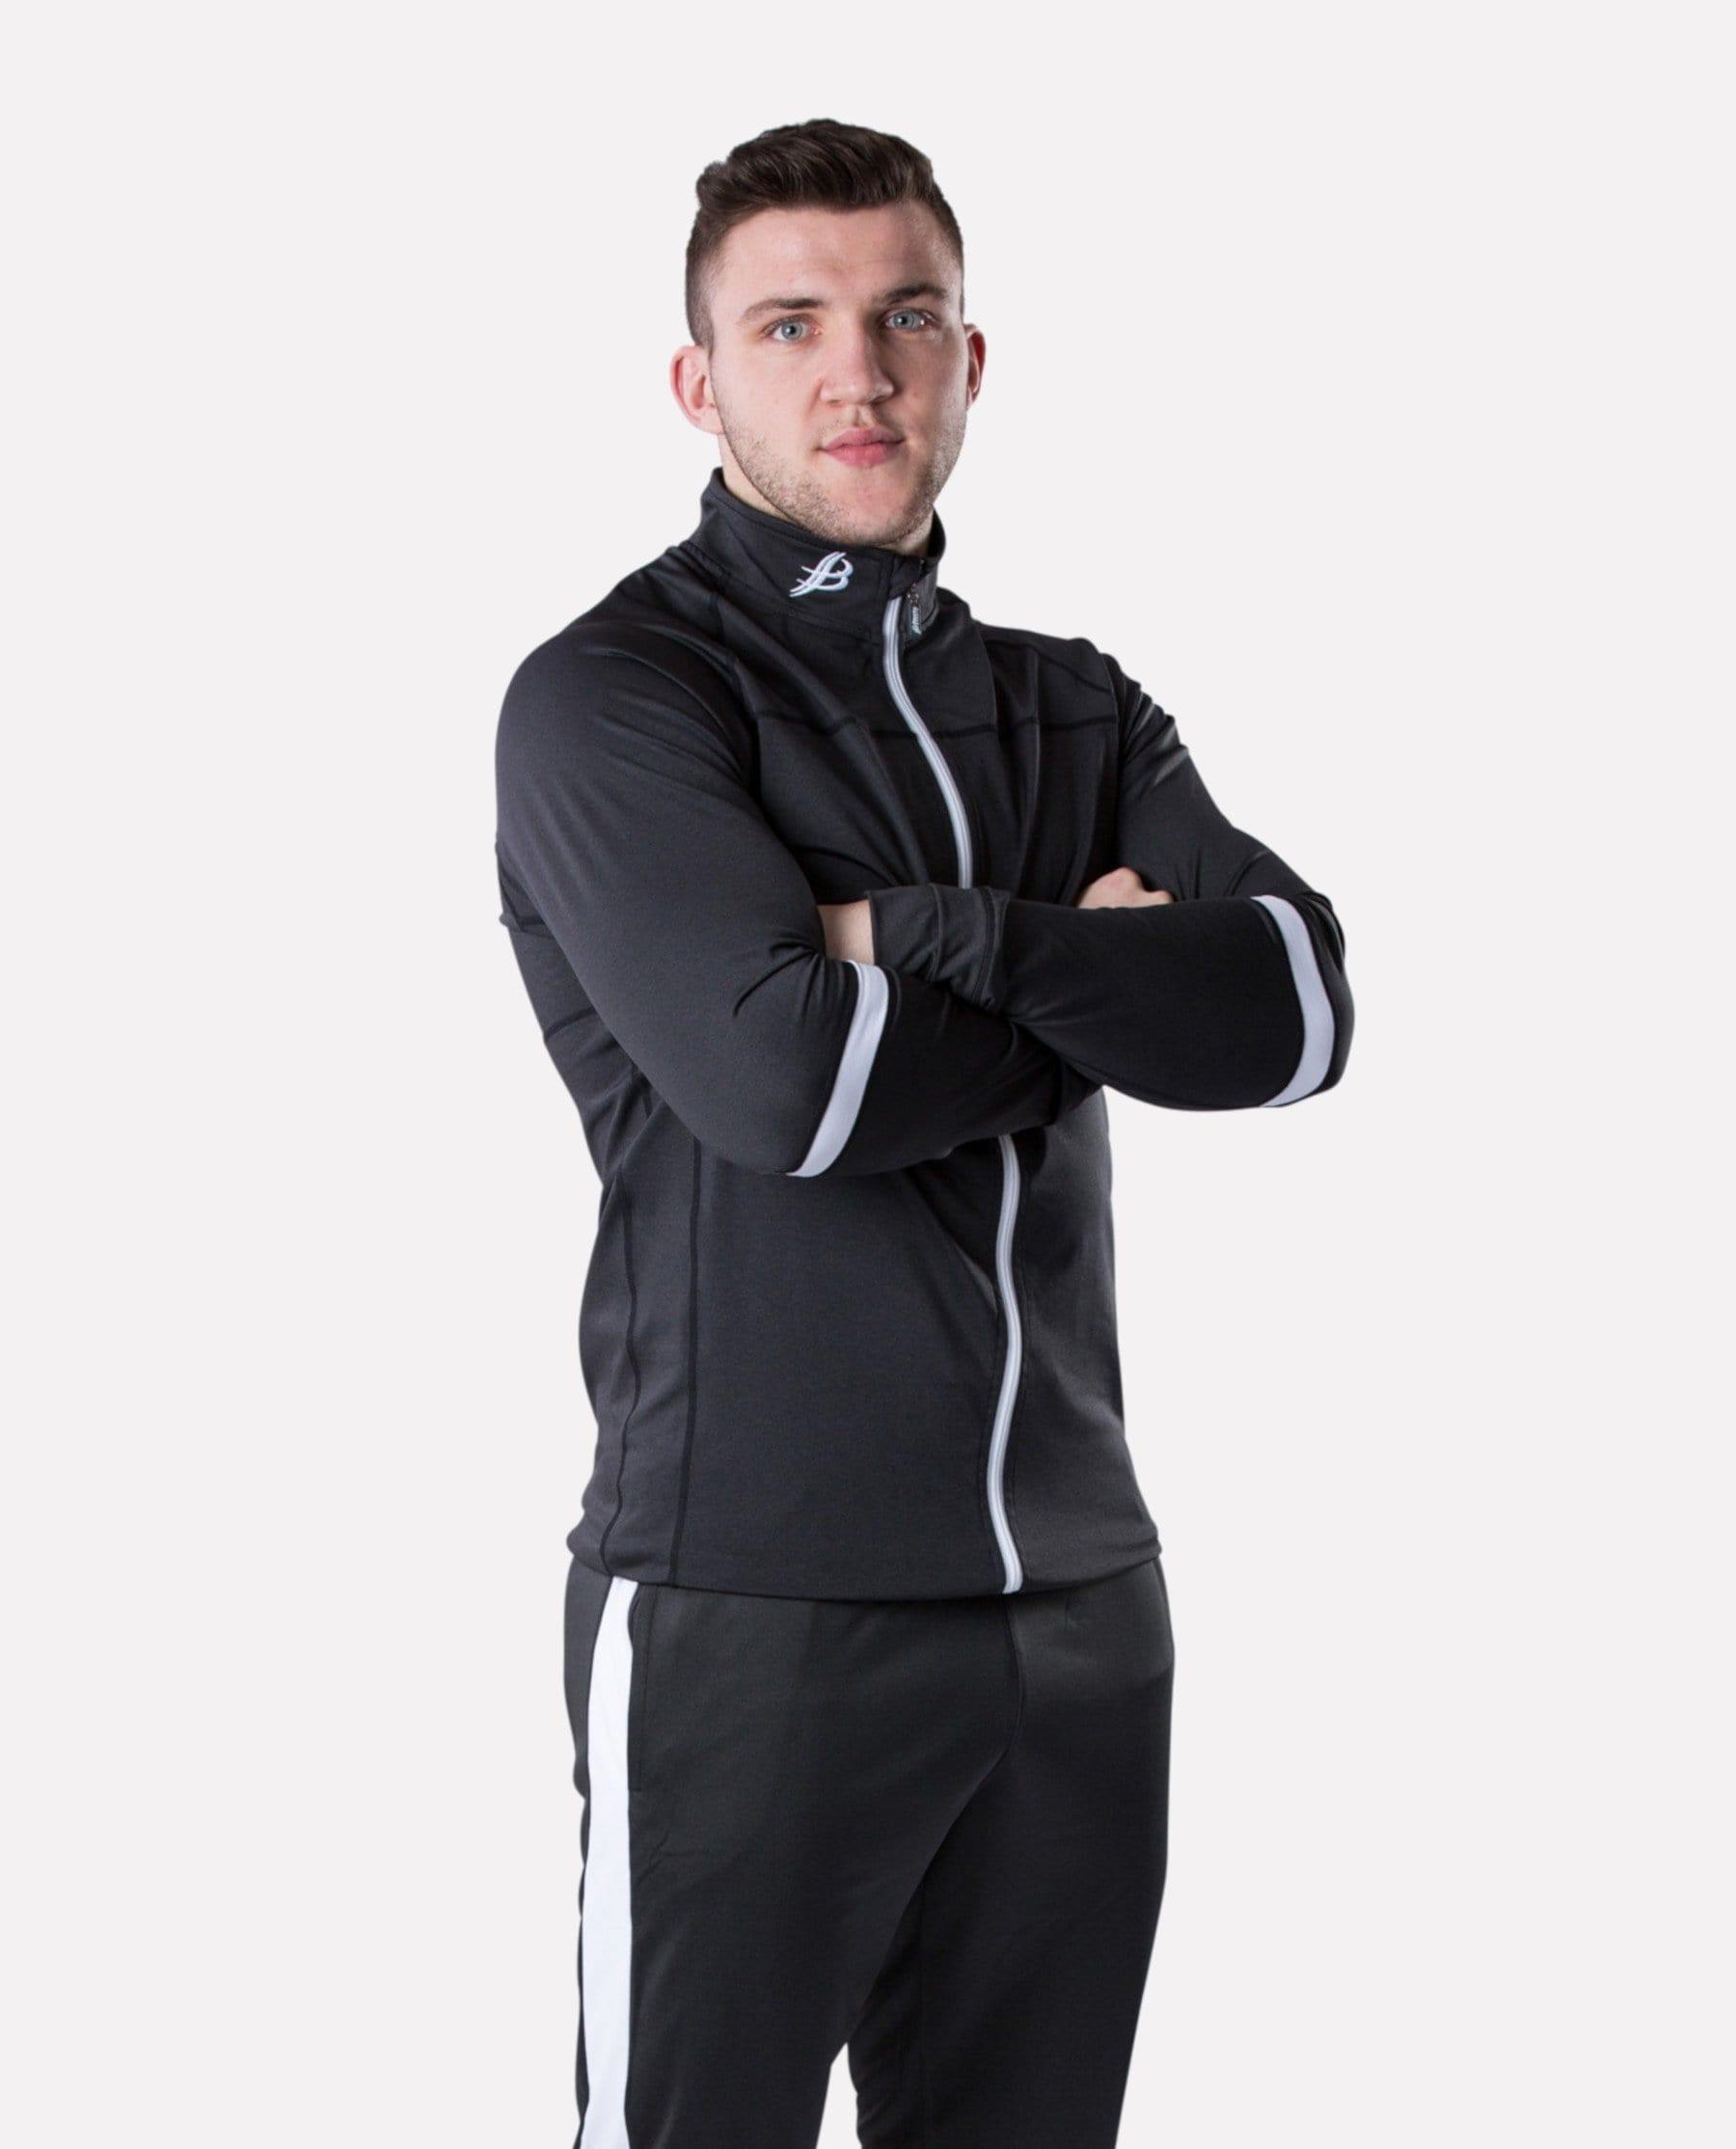 ALPHA Adult Full Zip (Black Fleck/White) - Bourke Sports Limited